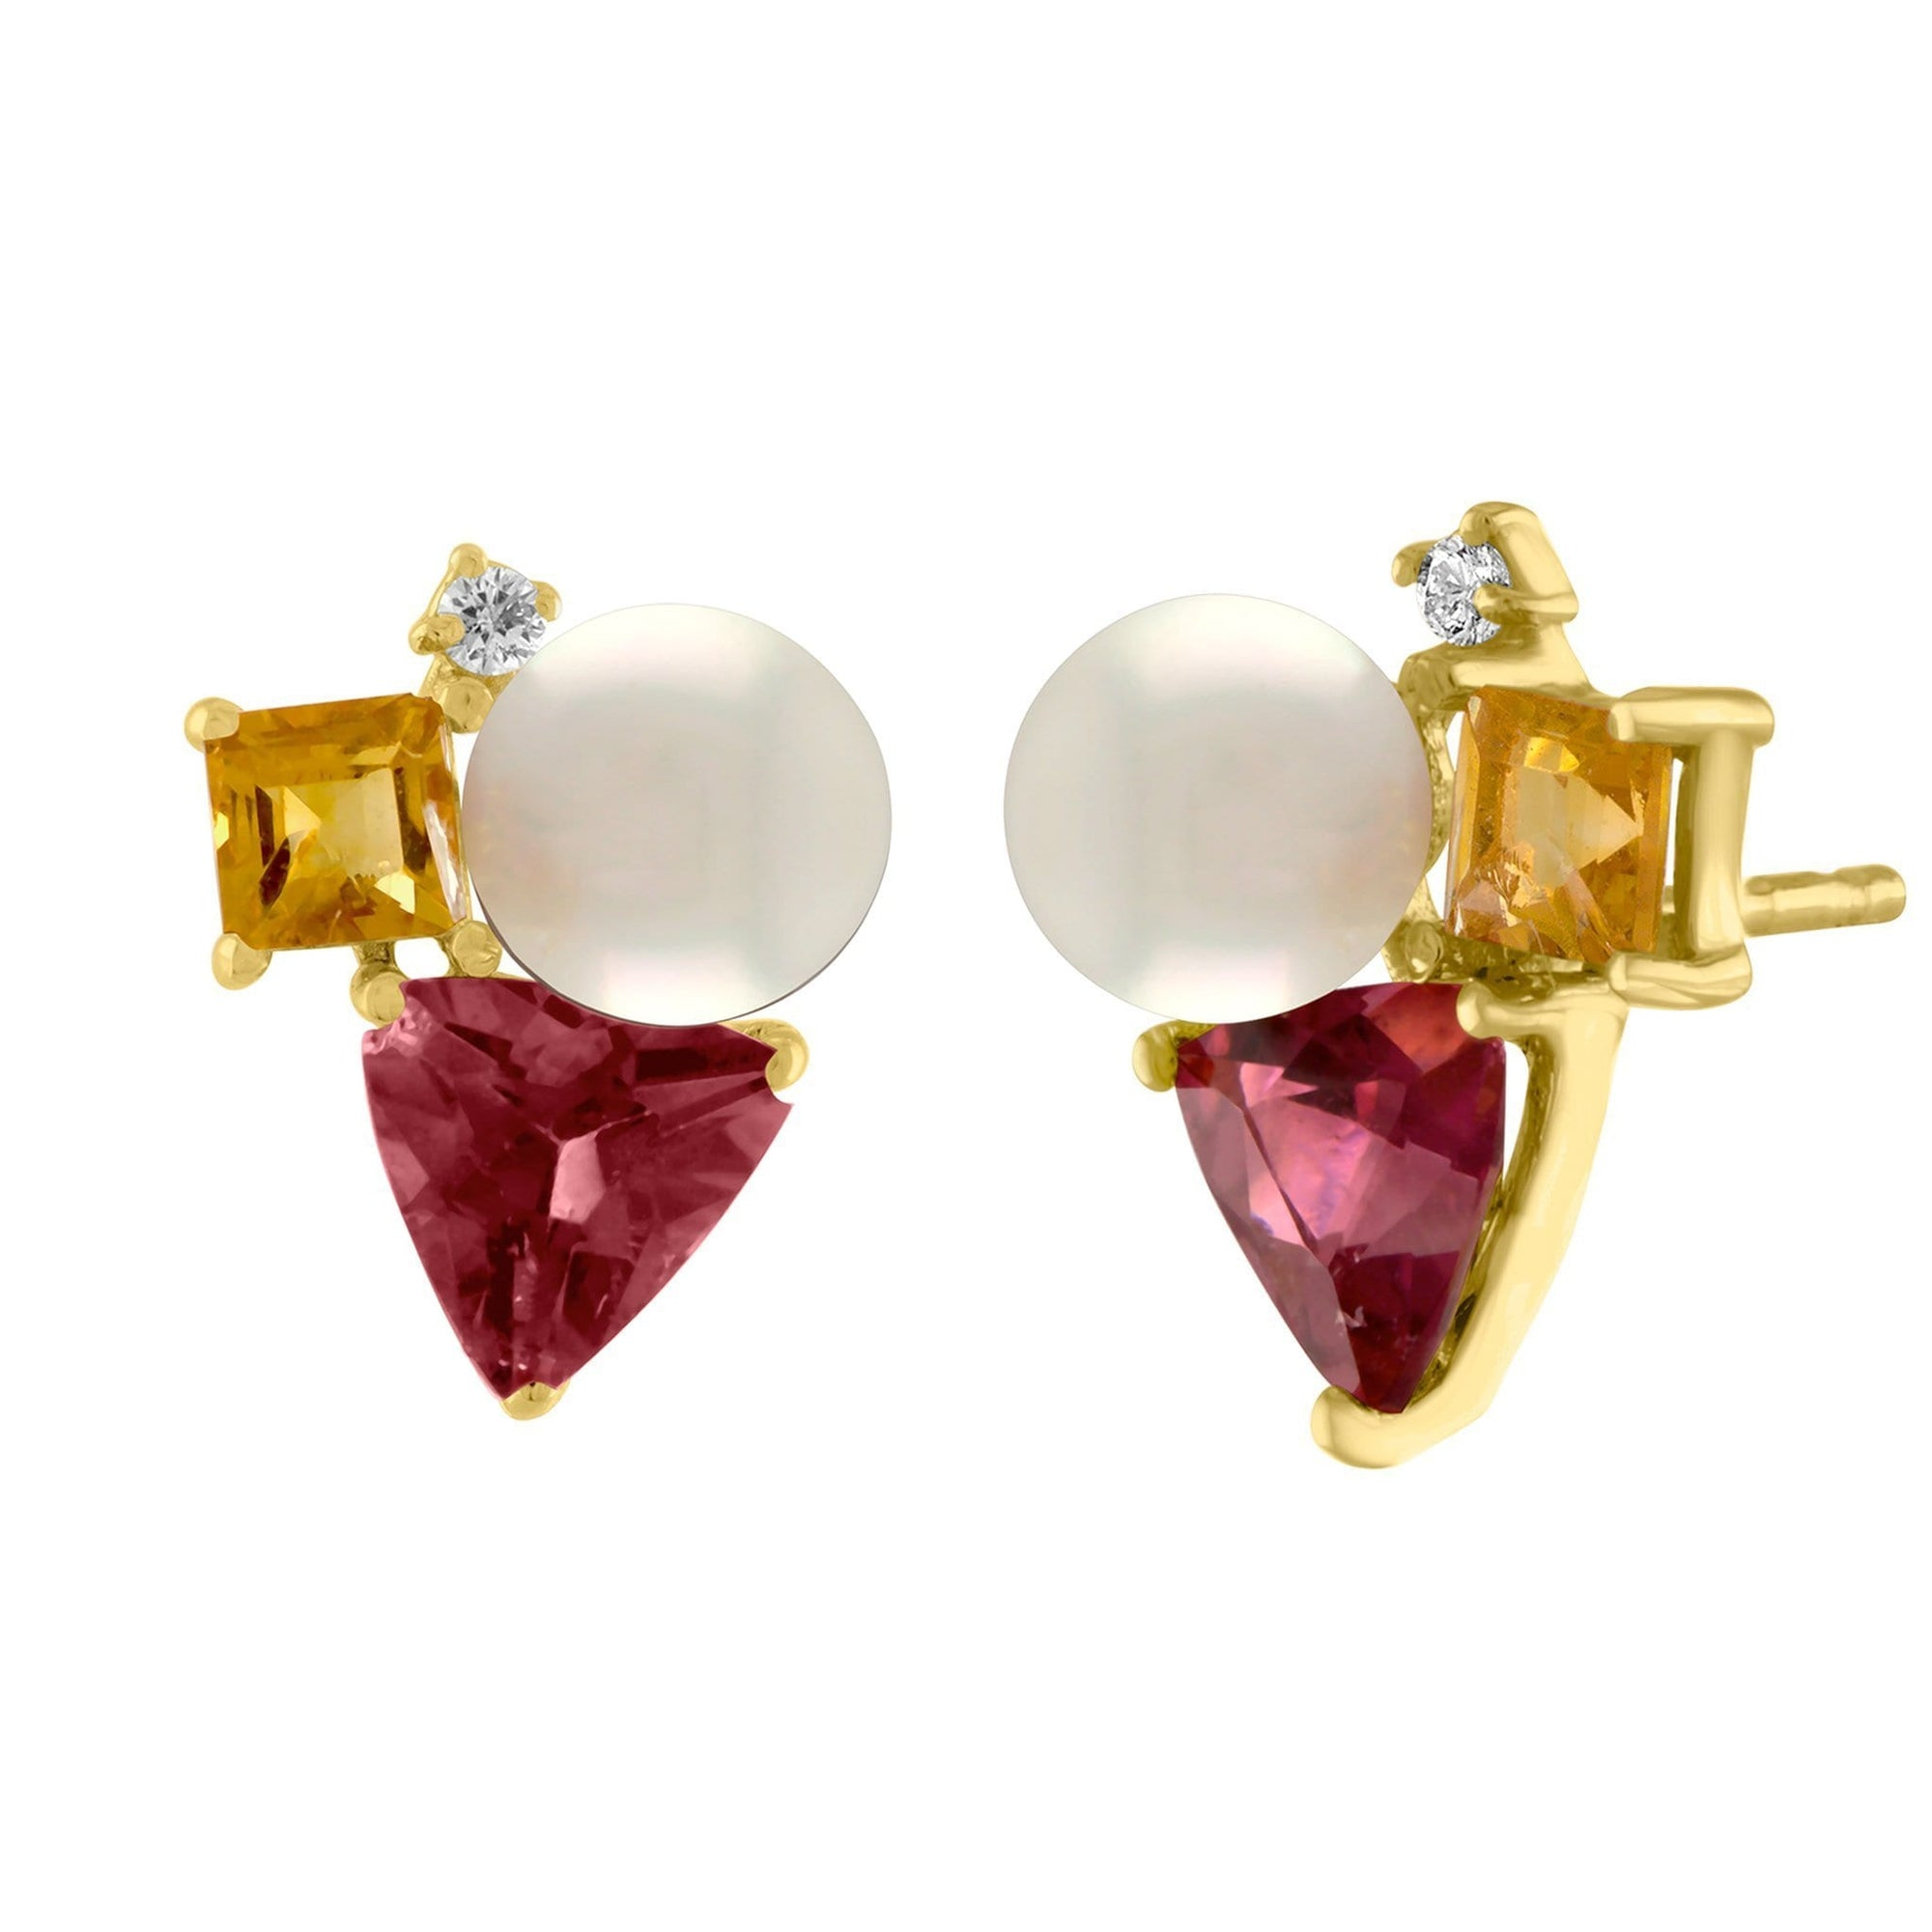 Luna Stud Earrings: 14k Rose Gold, Pearl, Pink Tourmaline, Citrine, Diamonds